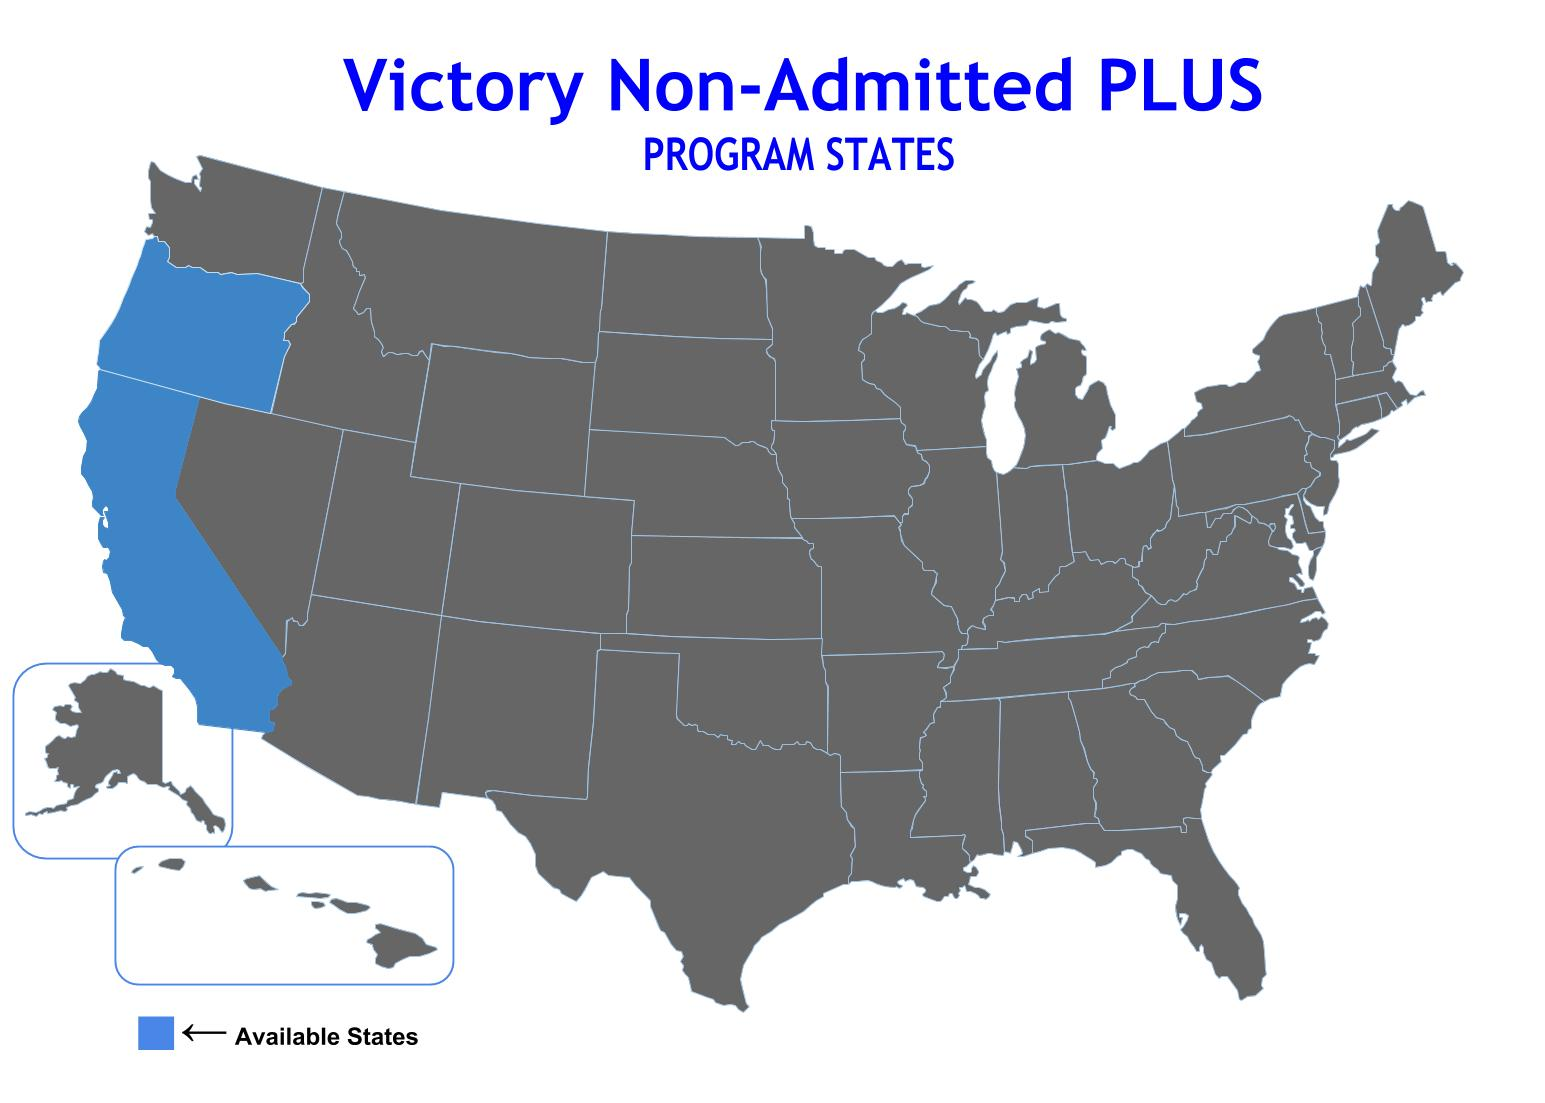 Compare Non-Admitted Plus Program Map